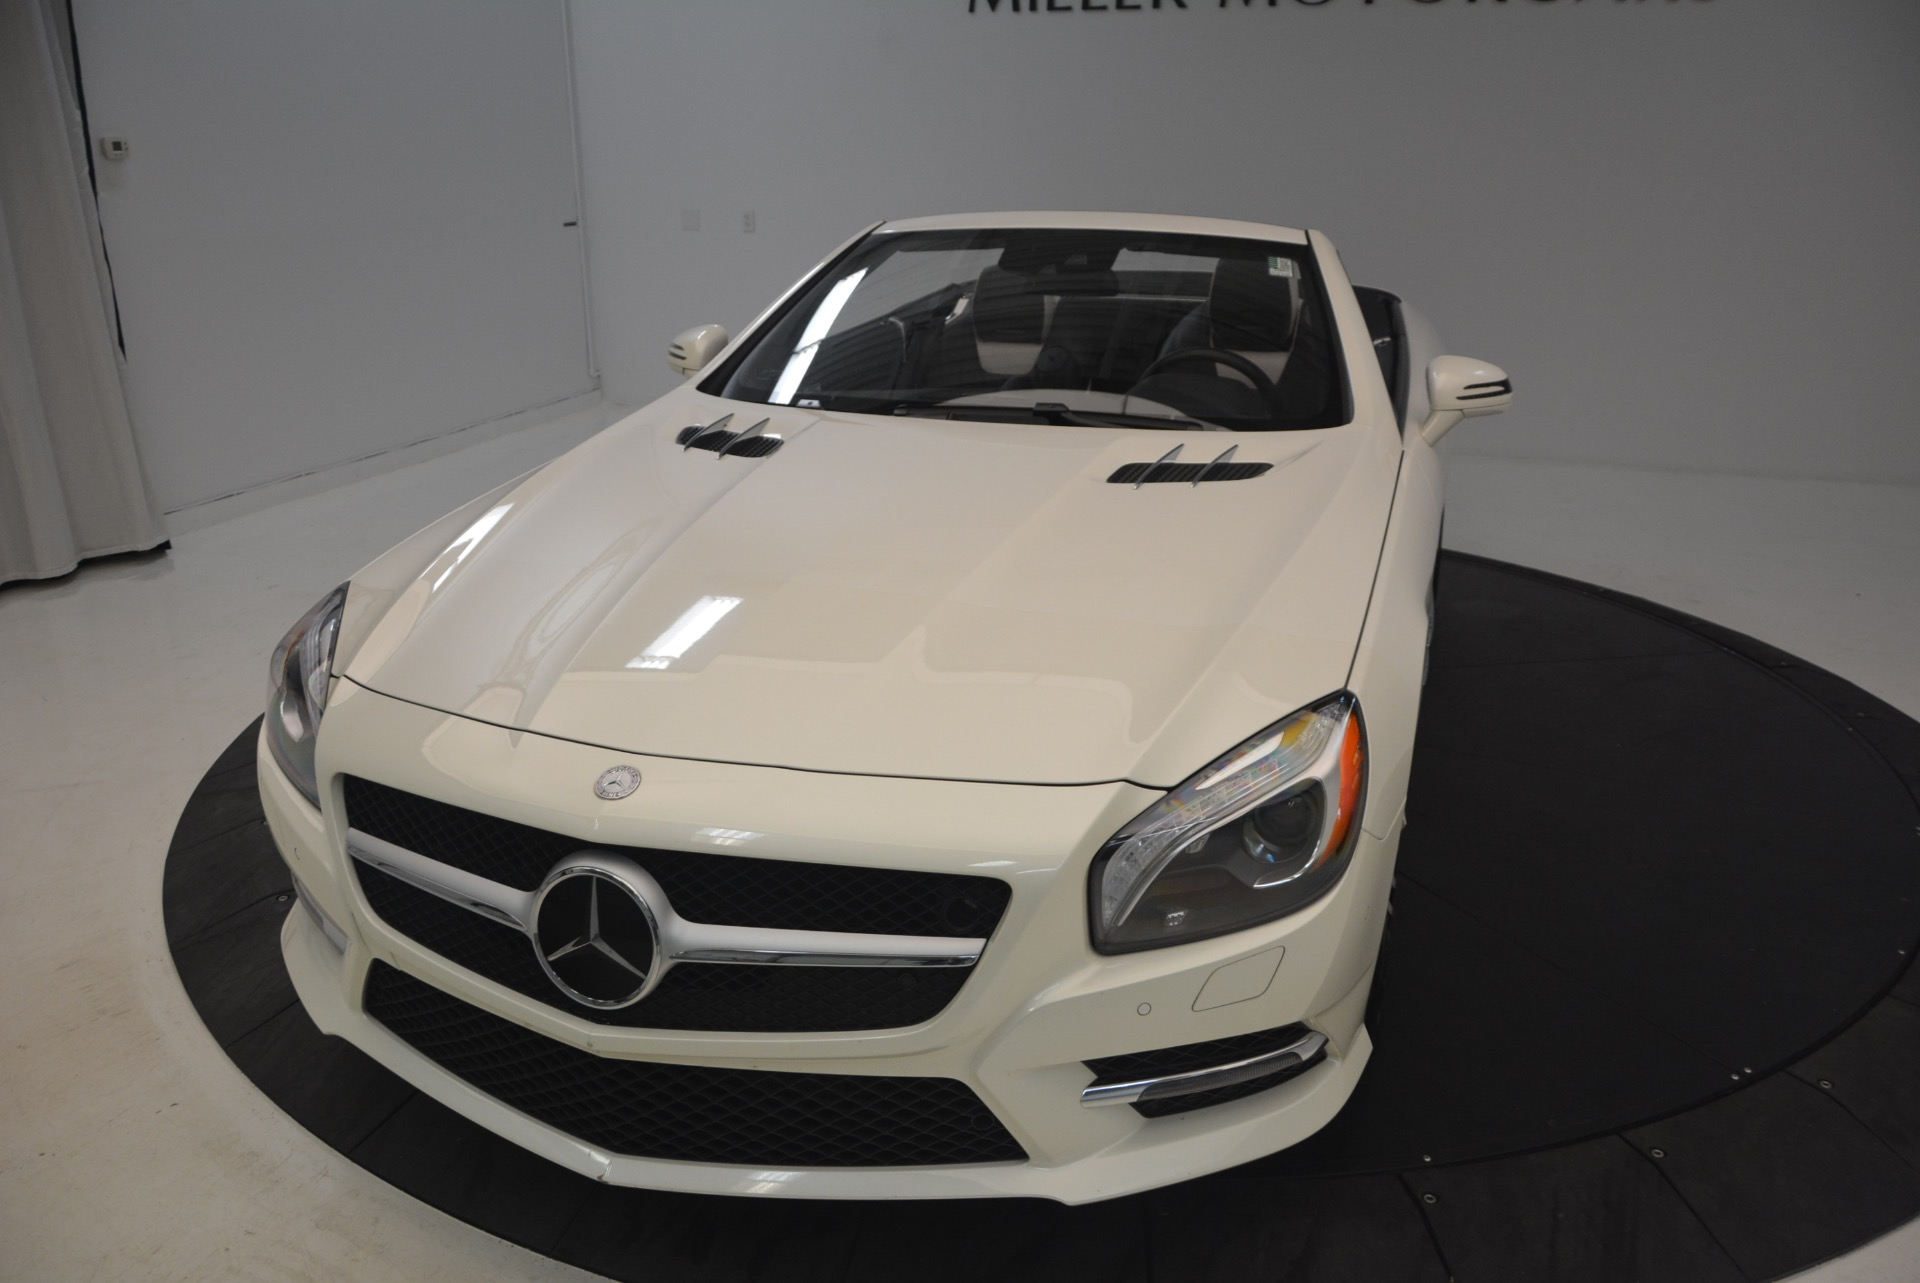 Used 2015 Mercedes Benz SL-Class SL 550 For Sale In Greenwich, CT 1261_p26